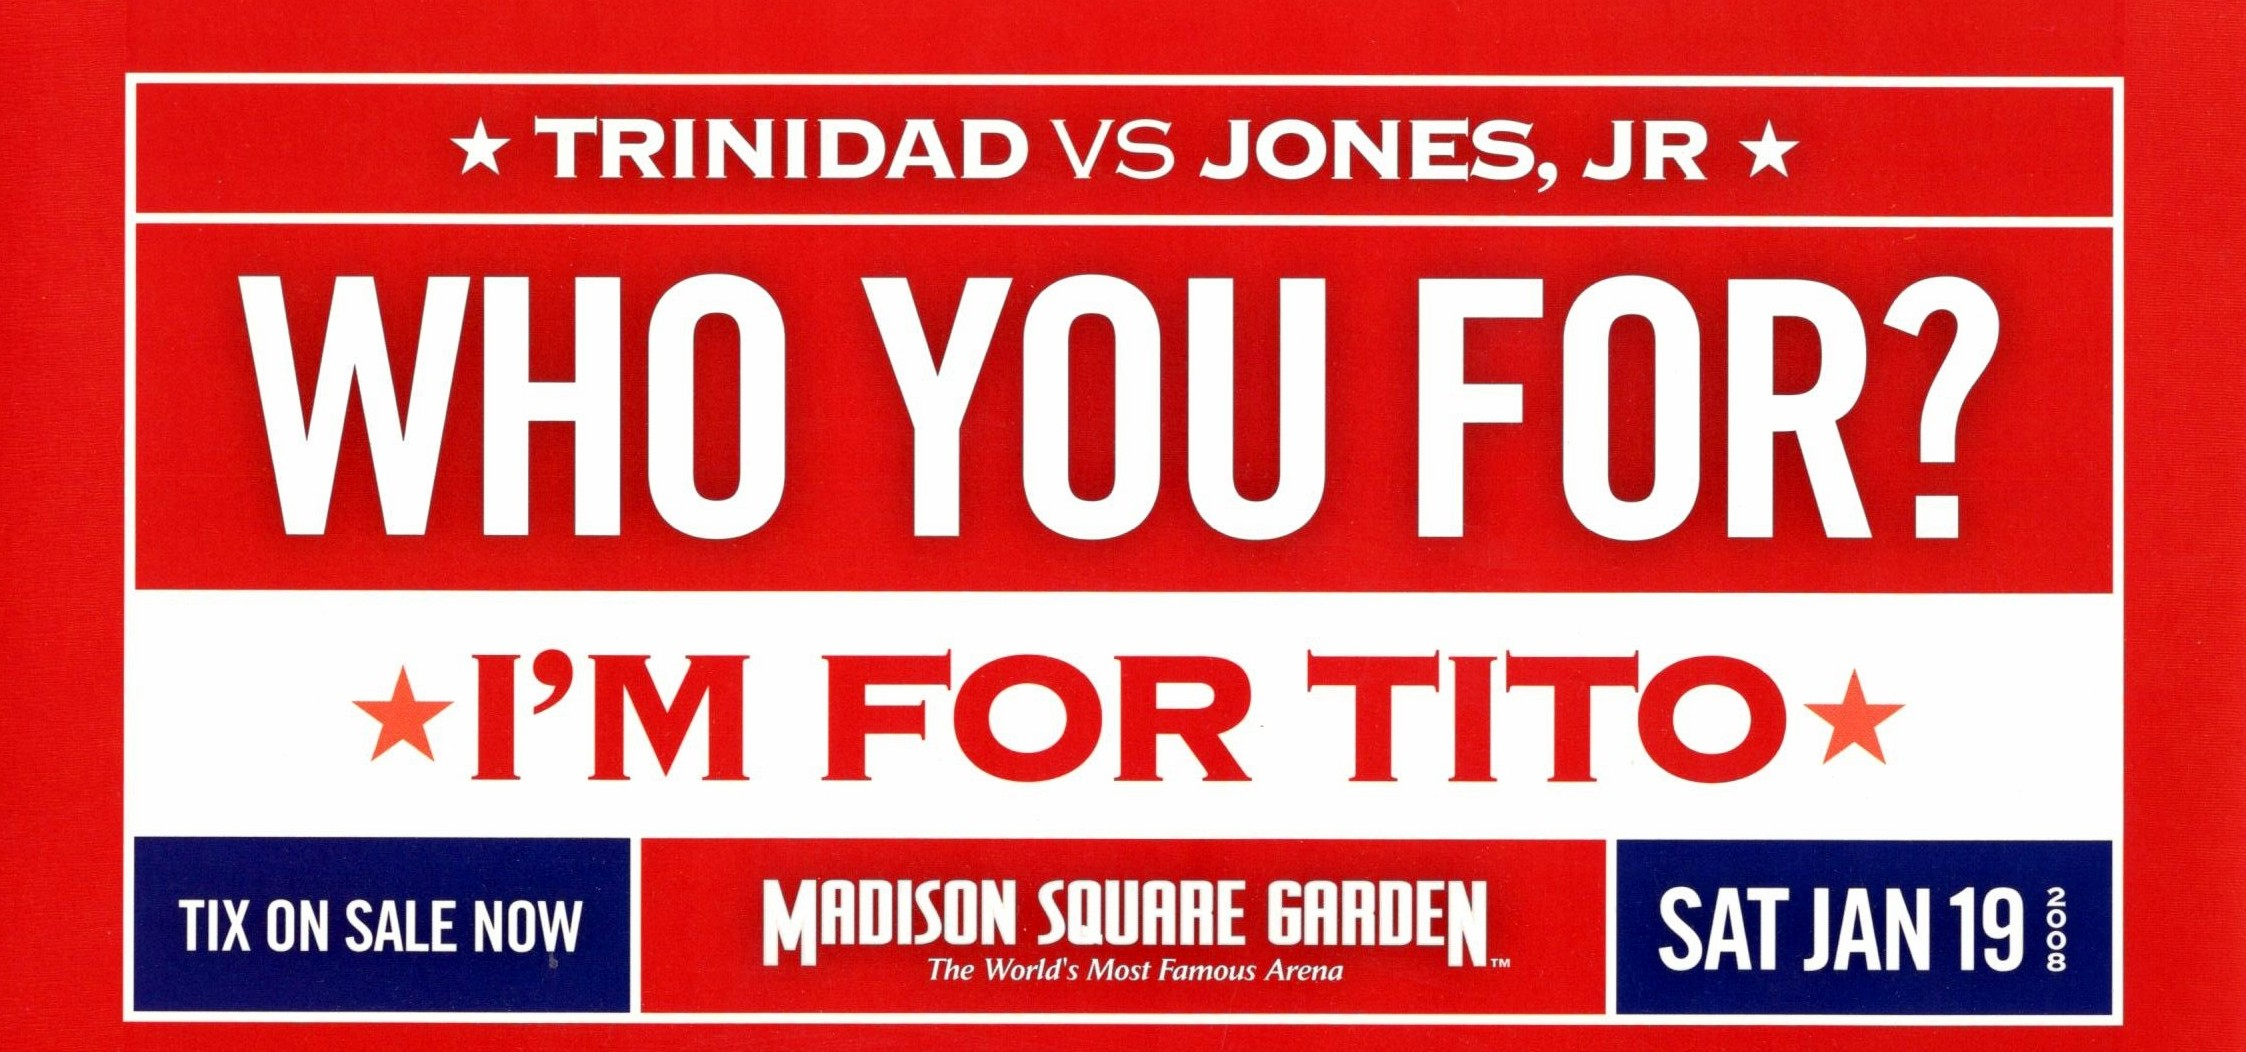 Fight promotion - Jones vs. Trinidad - Banner 2008.